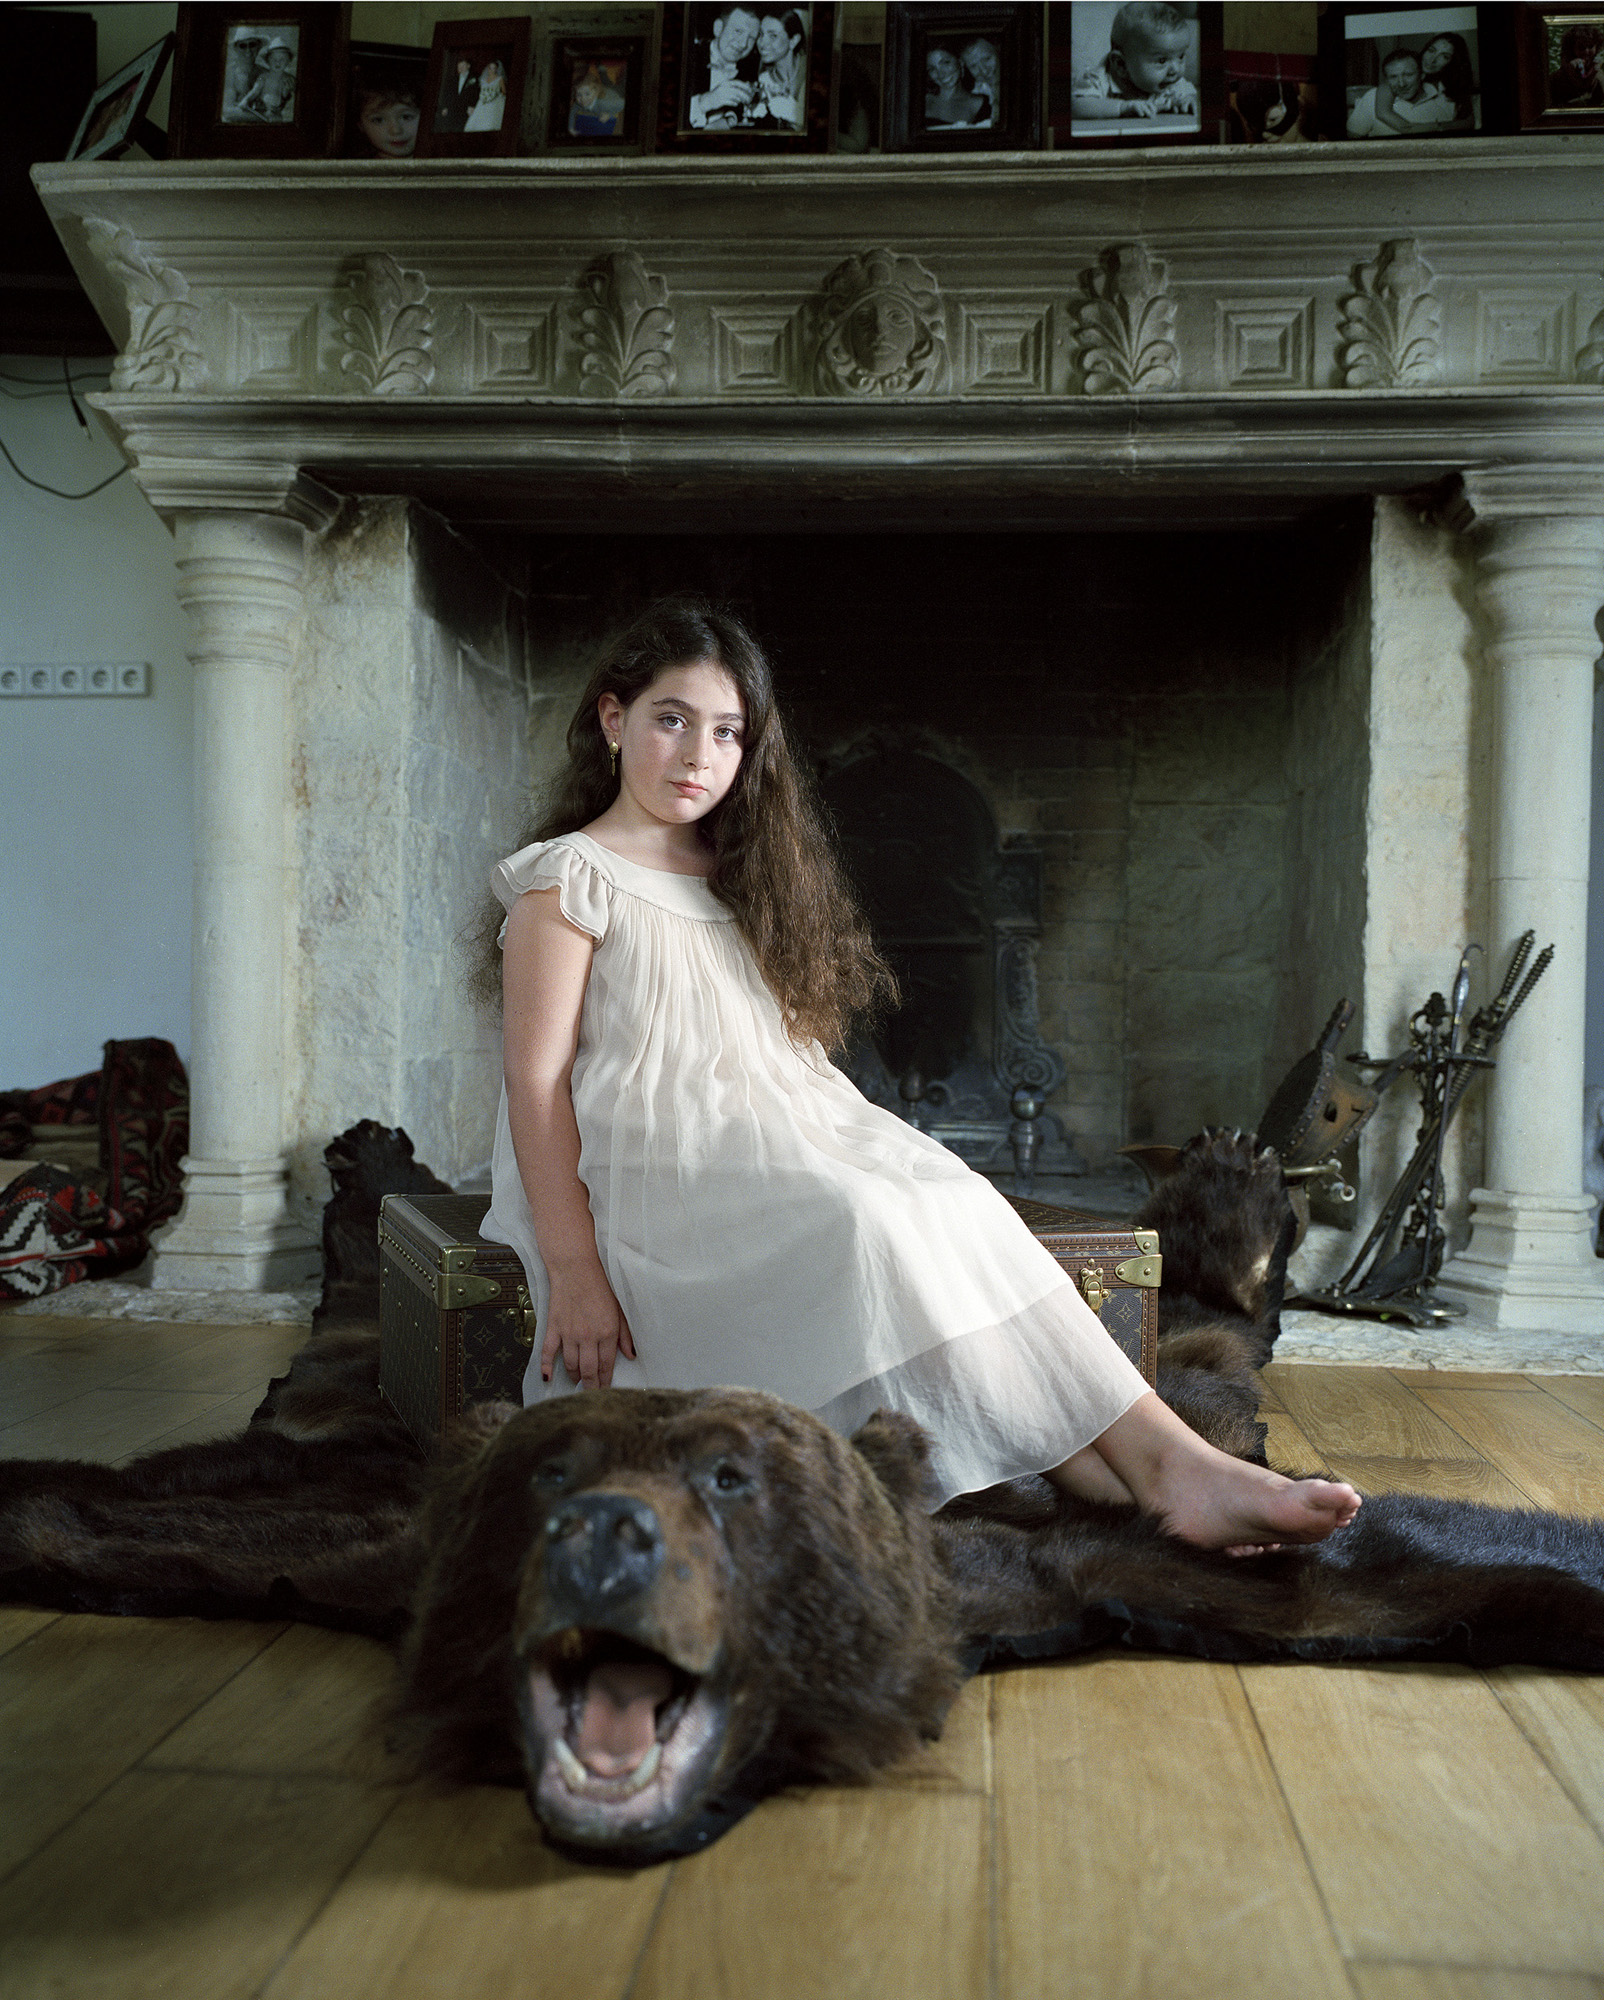 Sonia Sitting on the Bear Rug, Moscow 2009